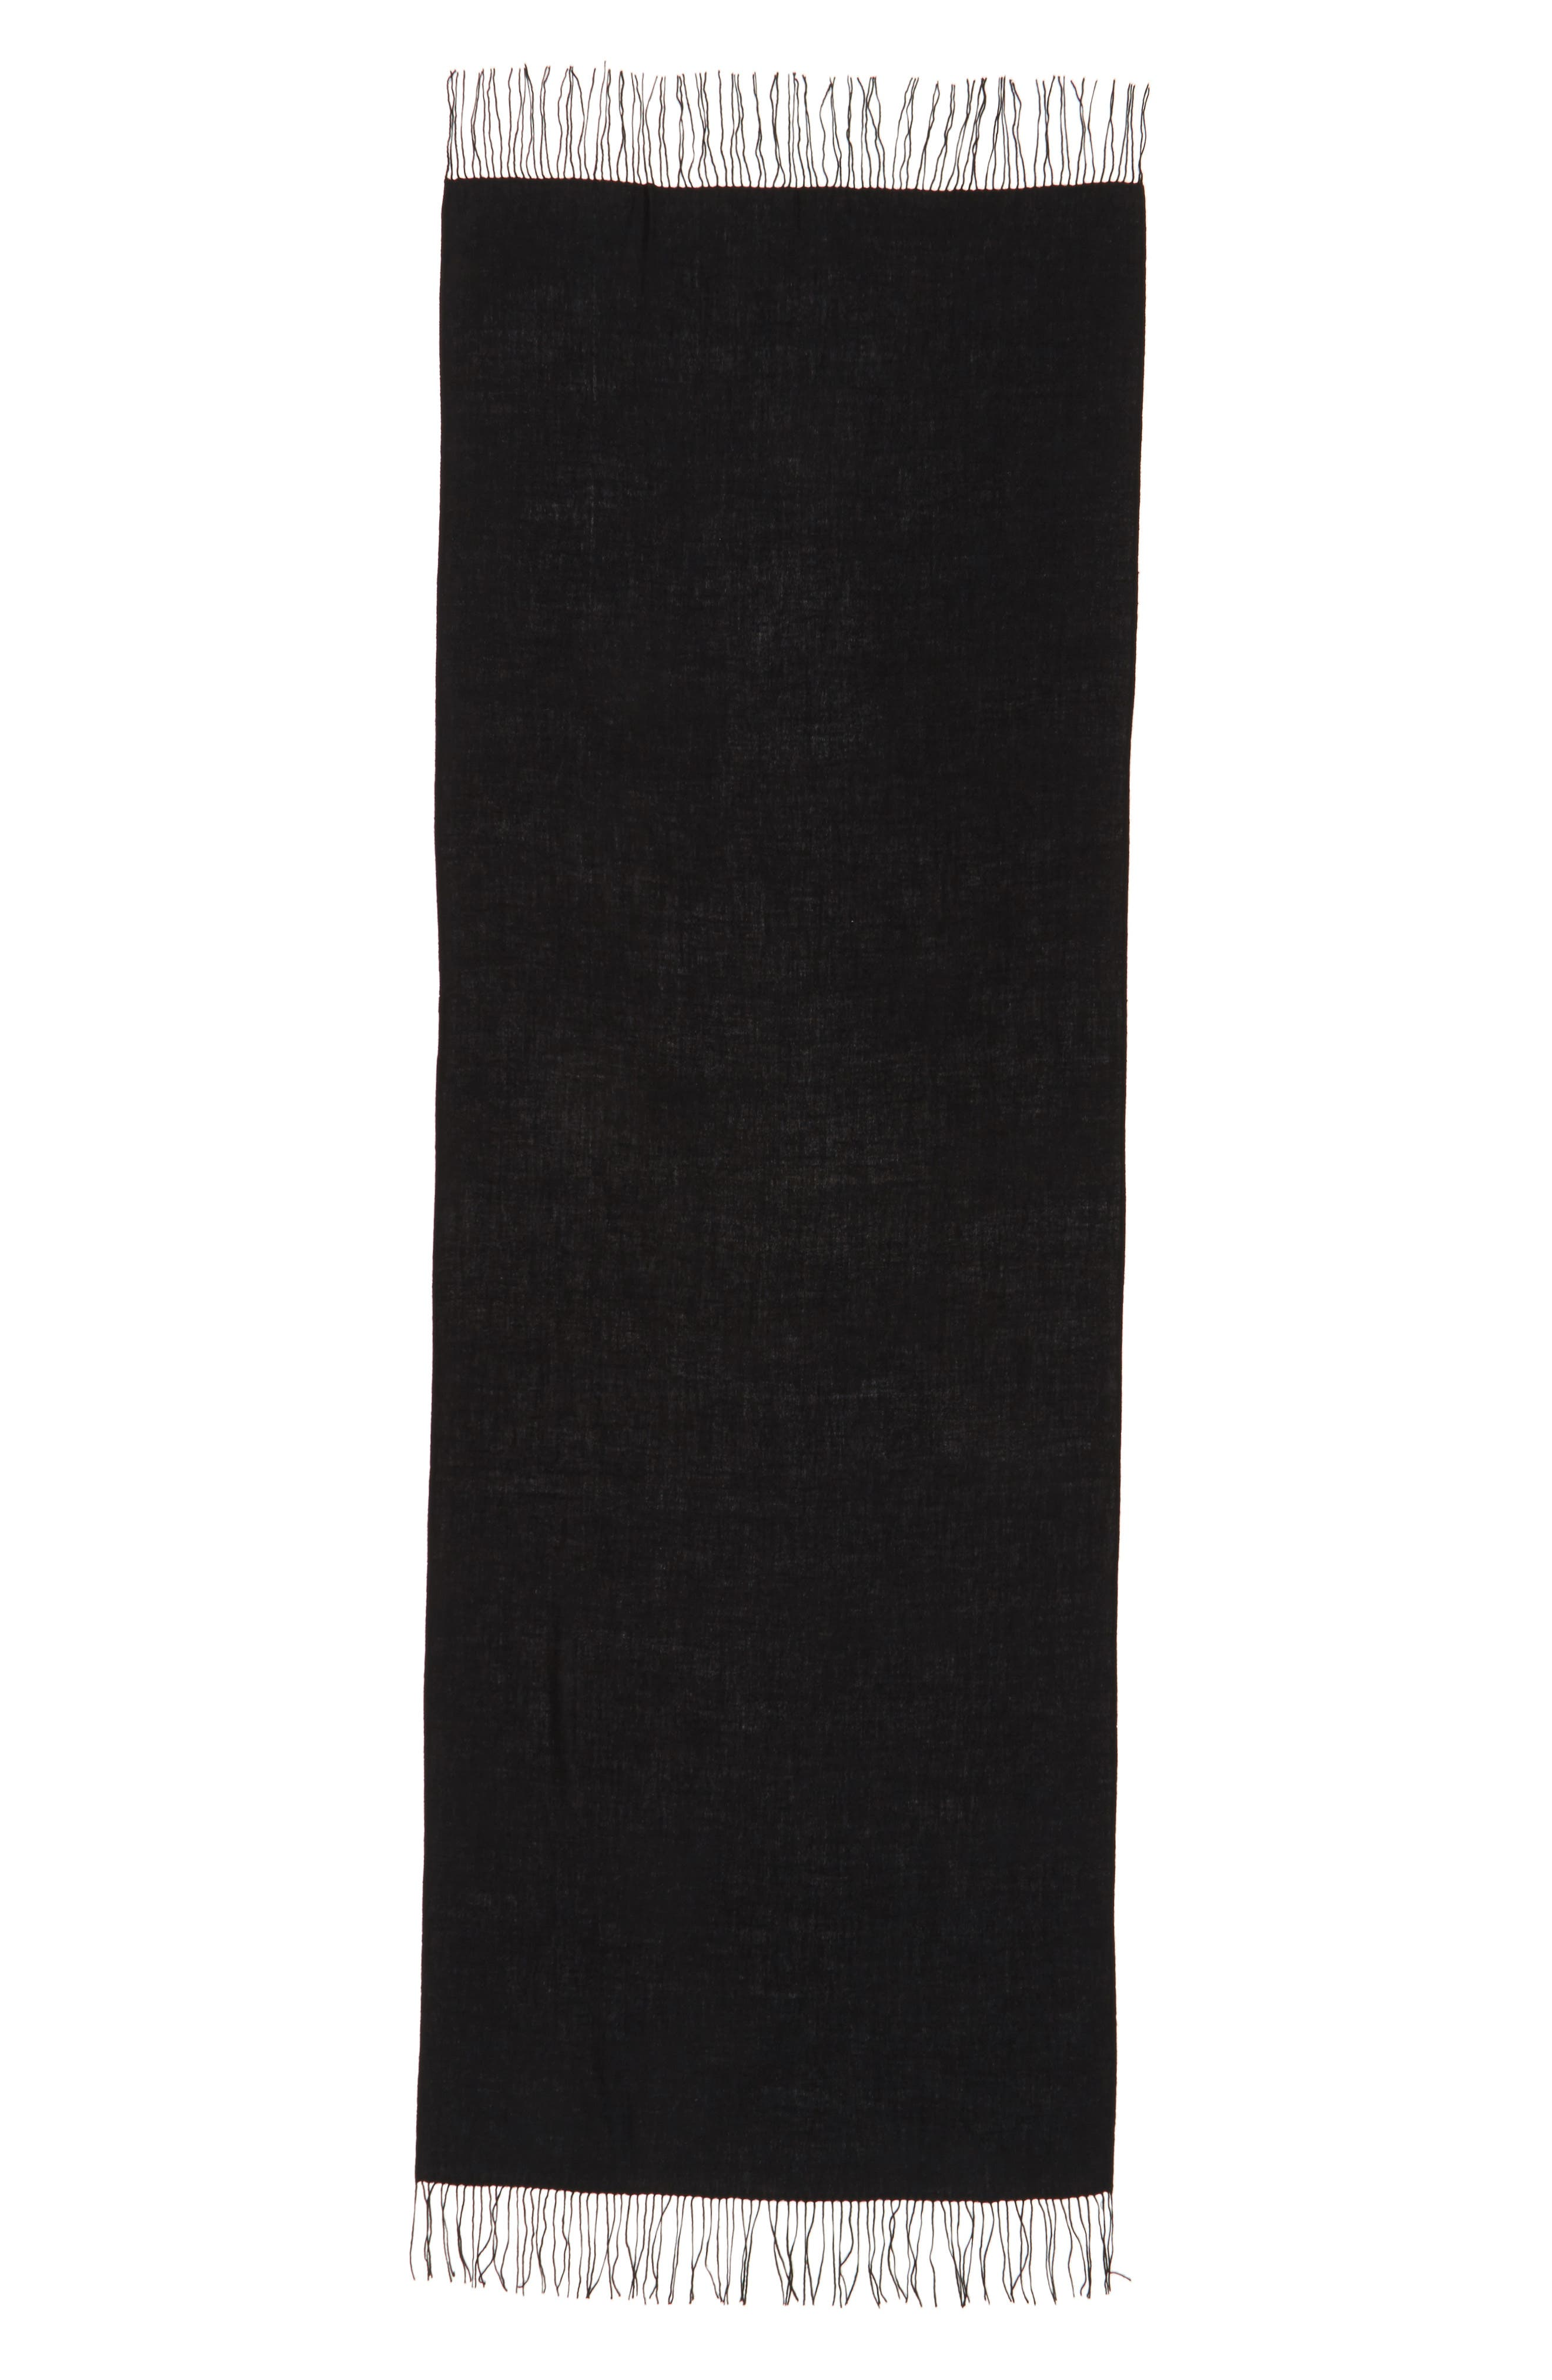 NORDSTROM, Tissue Weight Wool & Cashmere Scarf, Alternate thumbnail 3, color, BLACK